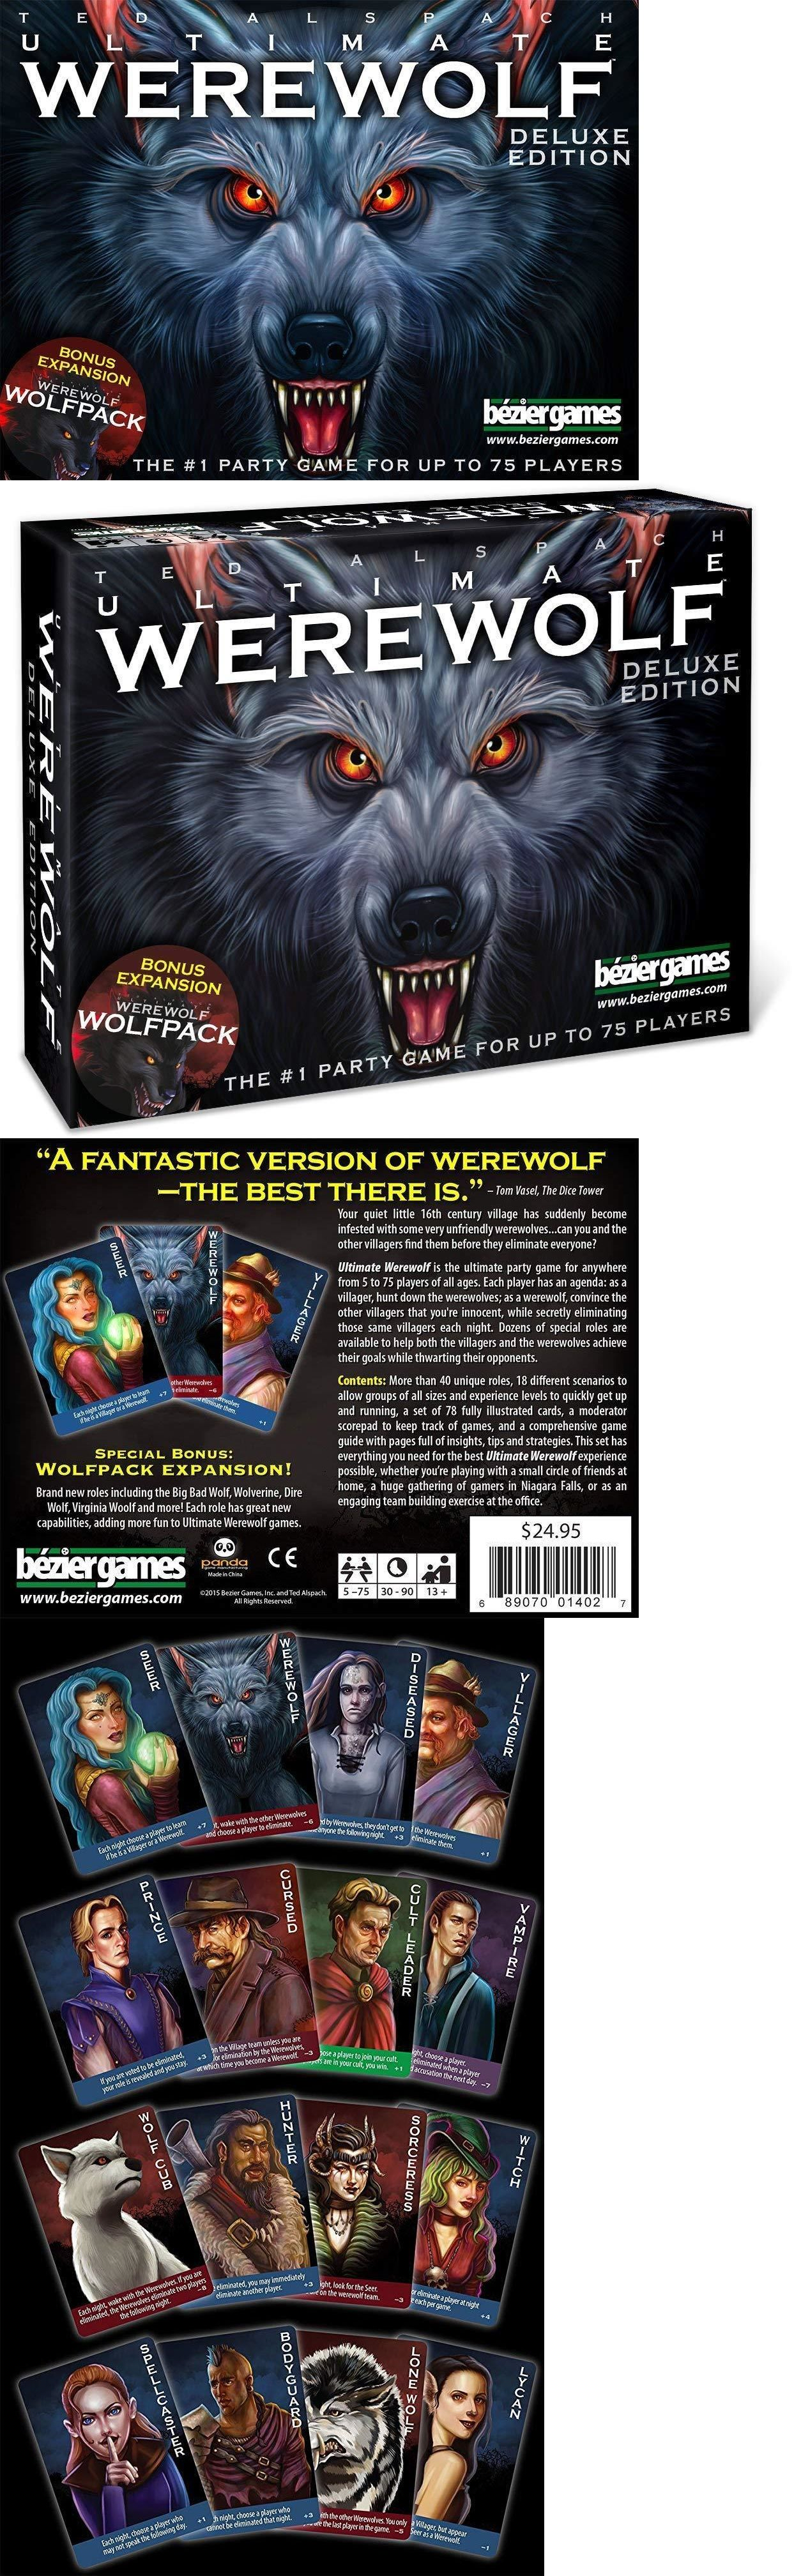 Card Games Contemporary 19082 Factory Sealed Bezier Games Ultimate Werewolf Deluxe Edition 75 Player Card Game Buy It Now O Player Card Card Games Werewolf